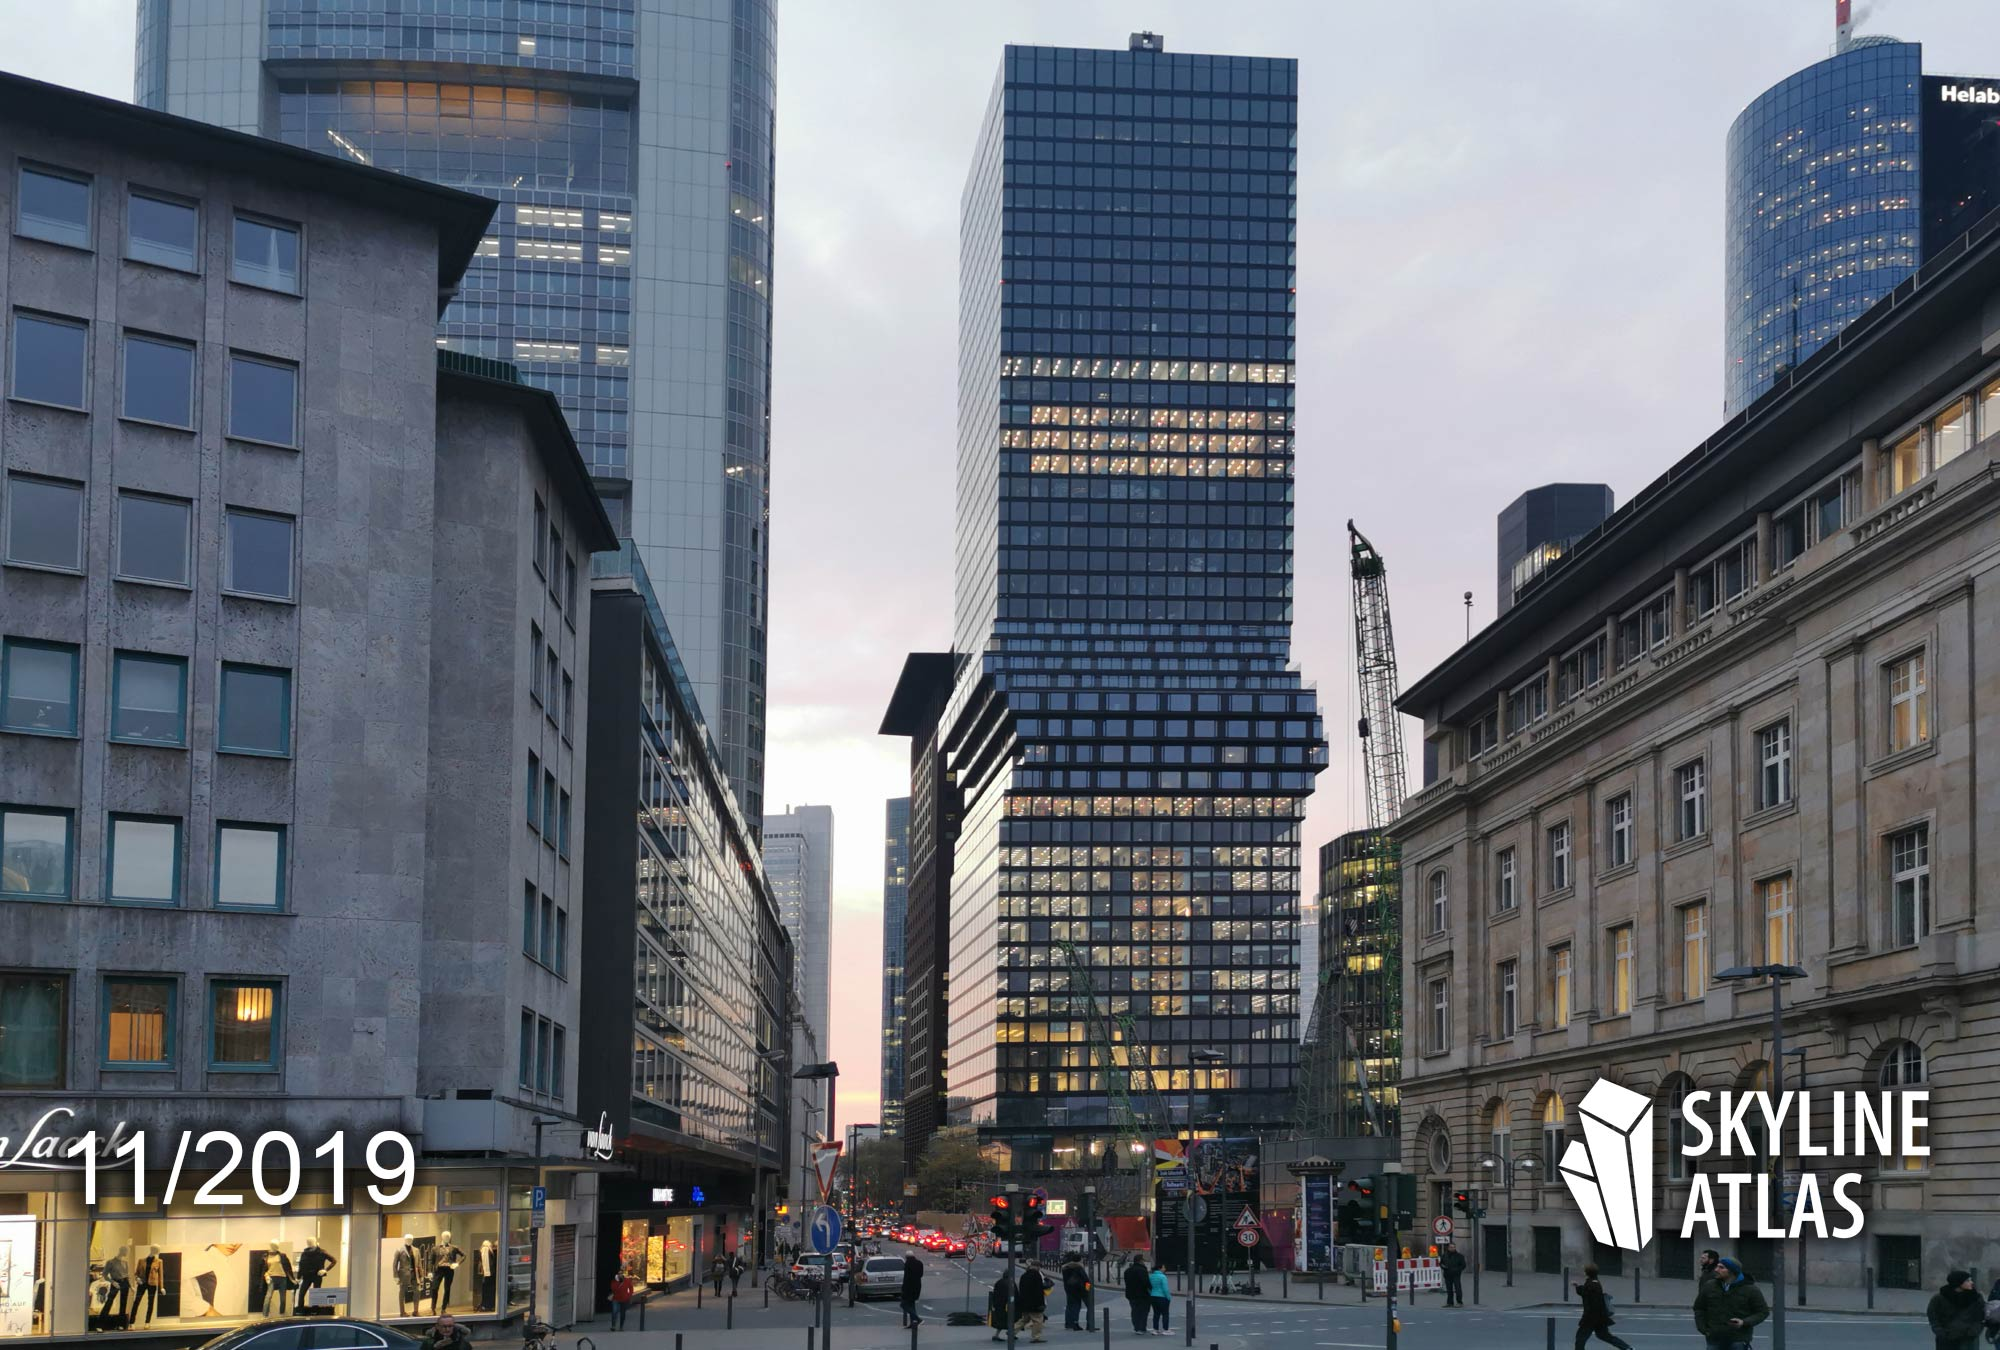 OmniTurm in Frankfurt - November 2019 - Architekt BIG - Projektentwickler Tishman Speyer - Asset Manager Commerz Real - OmniTurm abends